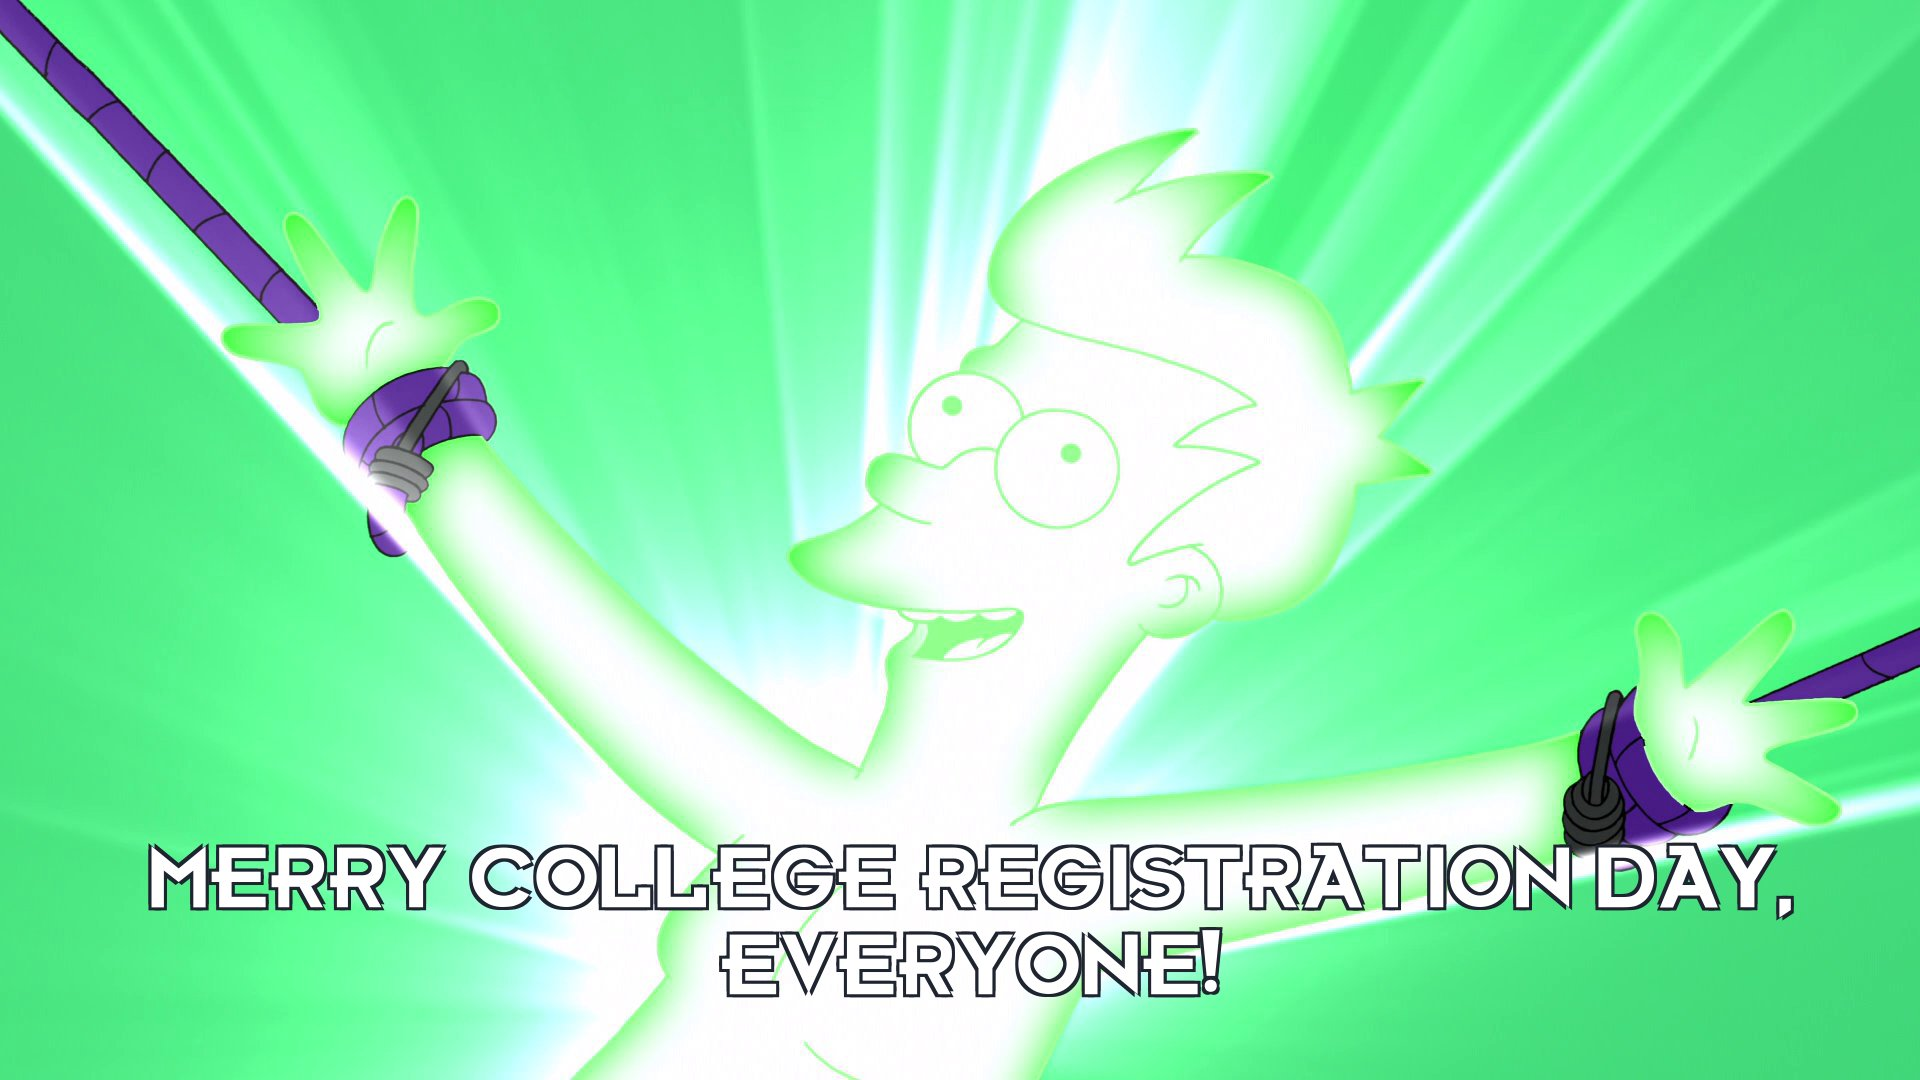 Philip J Fry: Merry college registration day, everyone!